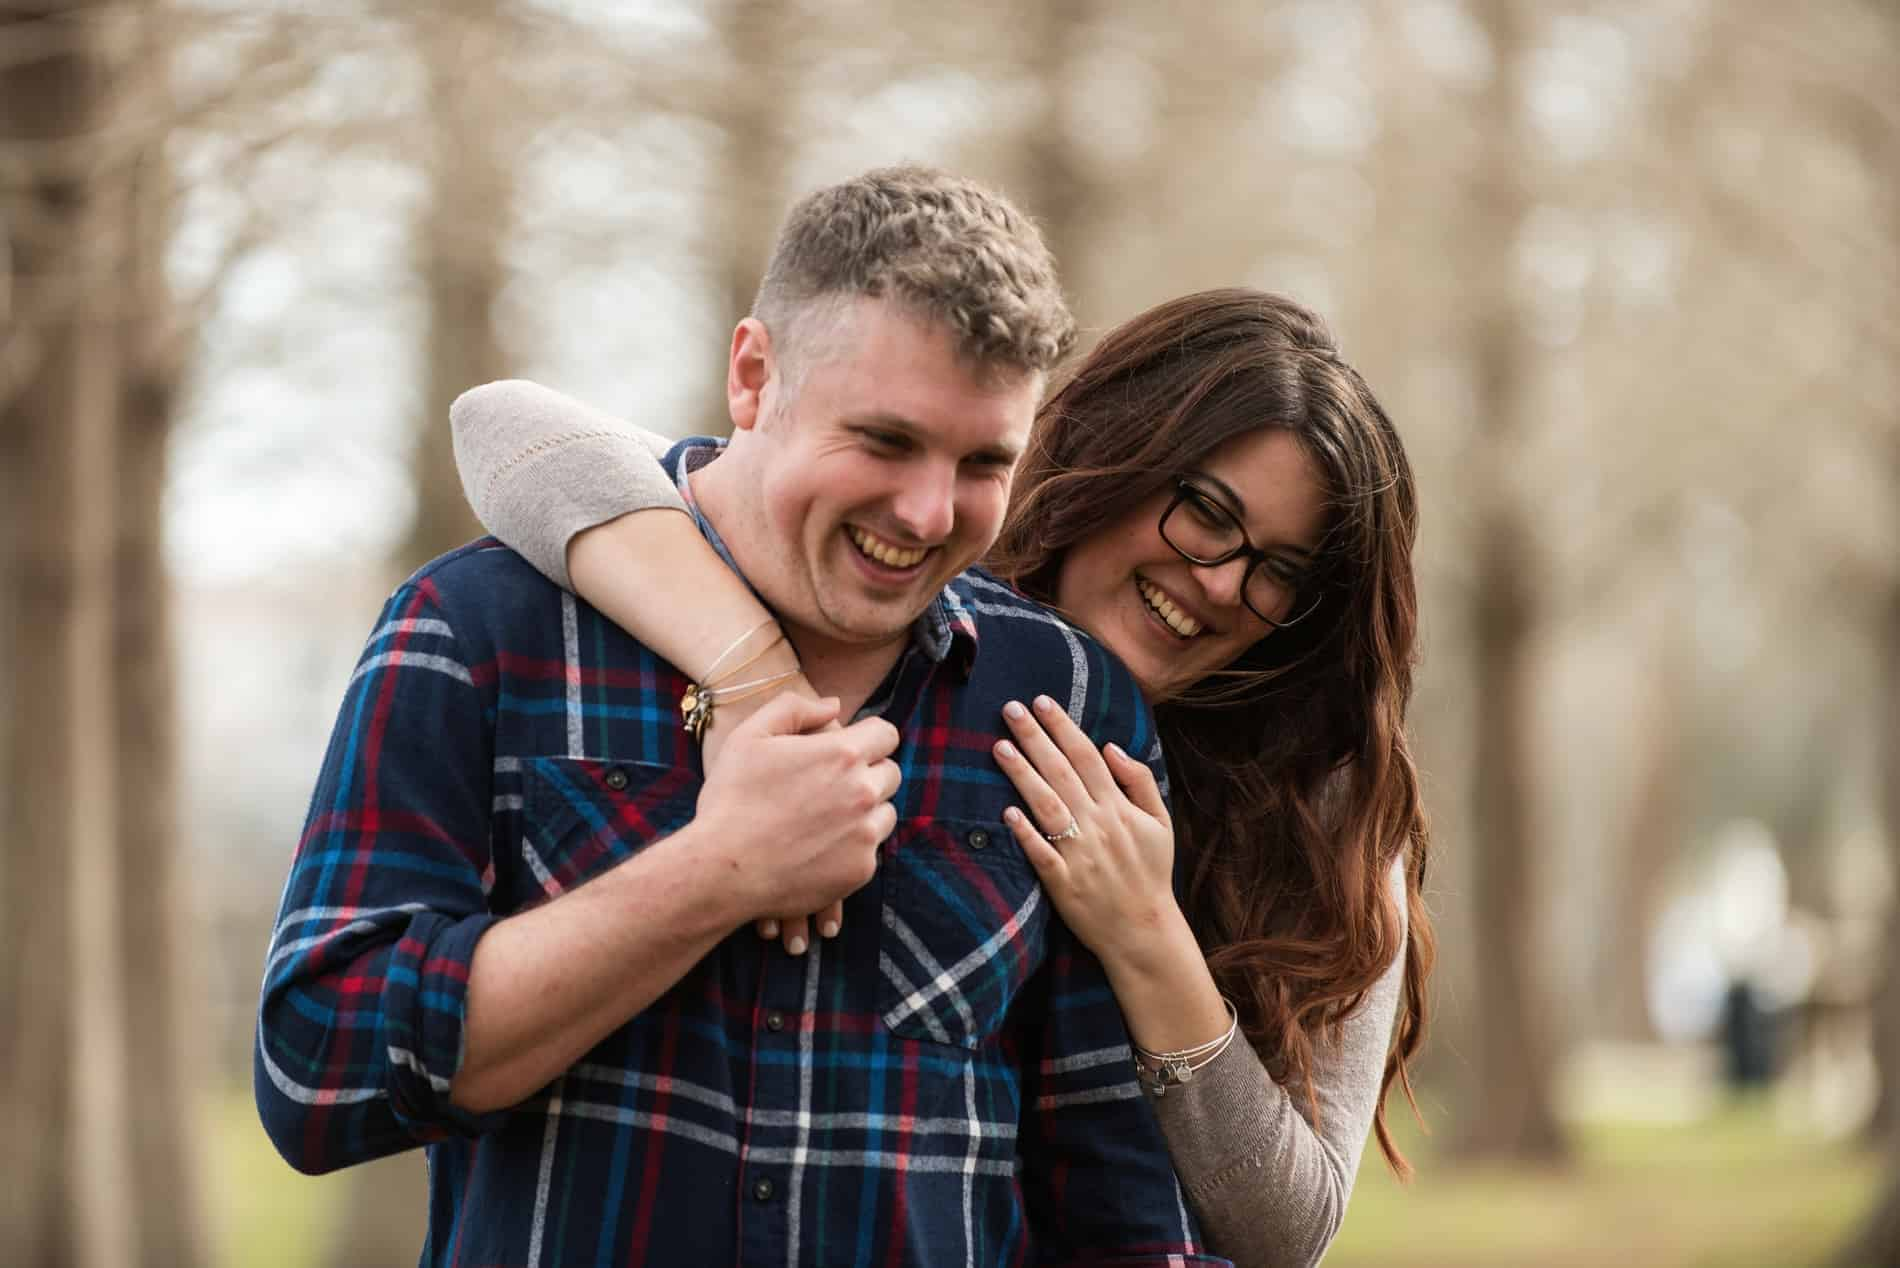 Couple enjoy an embrace in the park